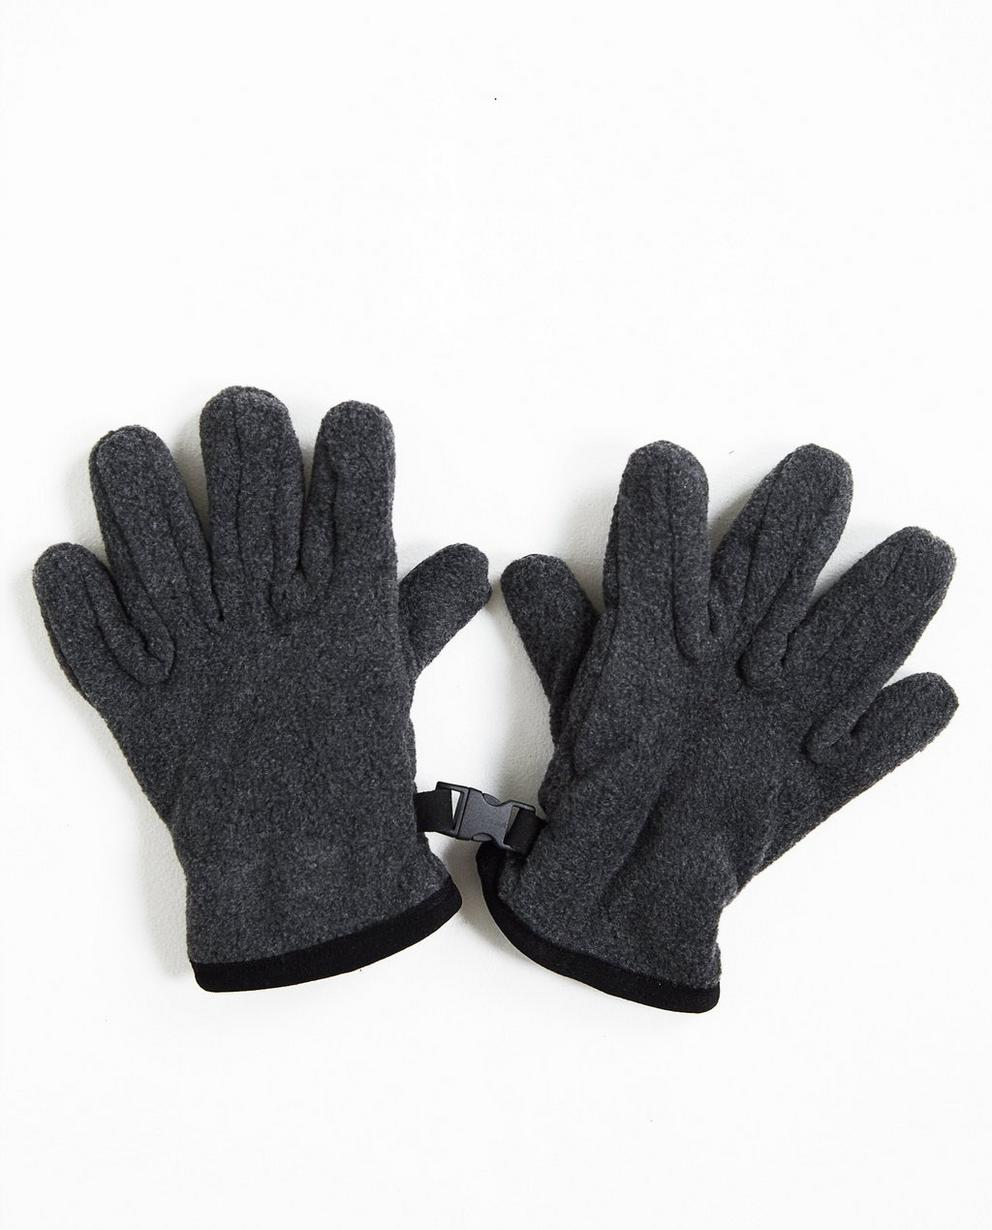 Gants en fleece - gris - JBC